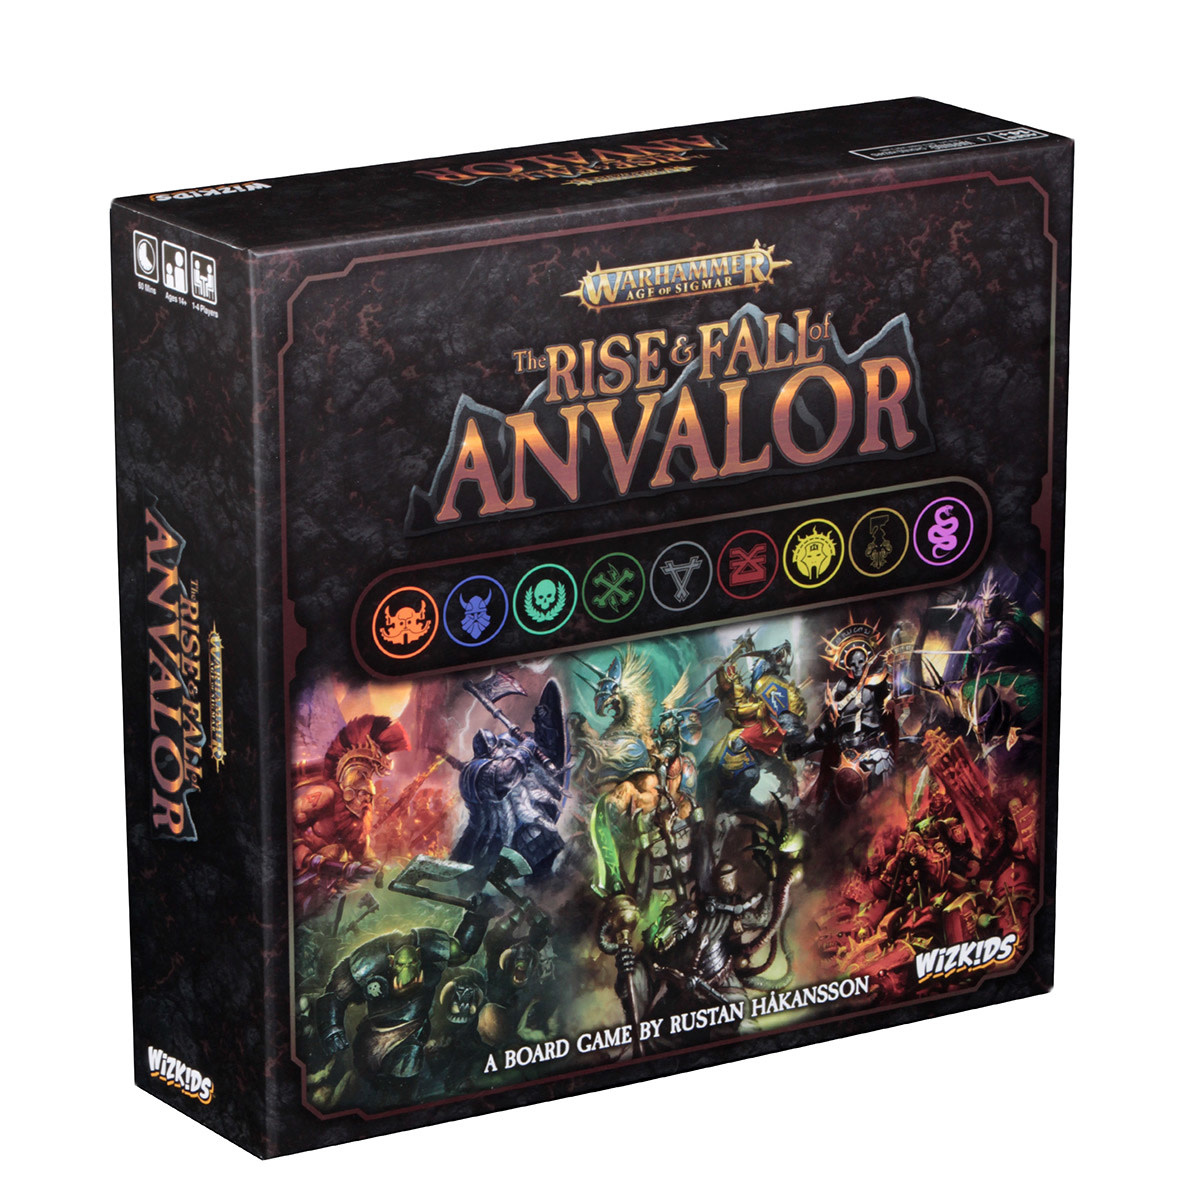 Warhammer: The Rise and Fall of Anvalor